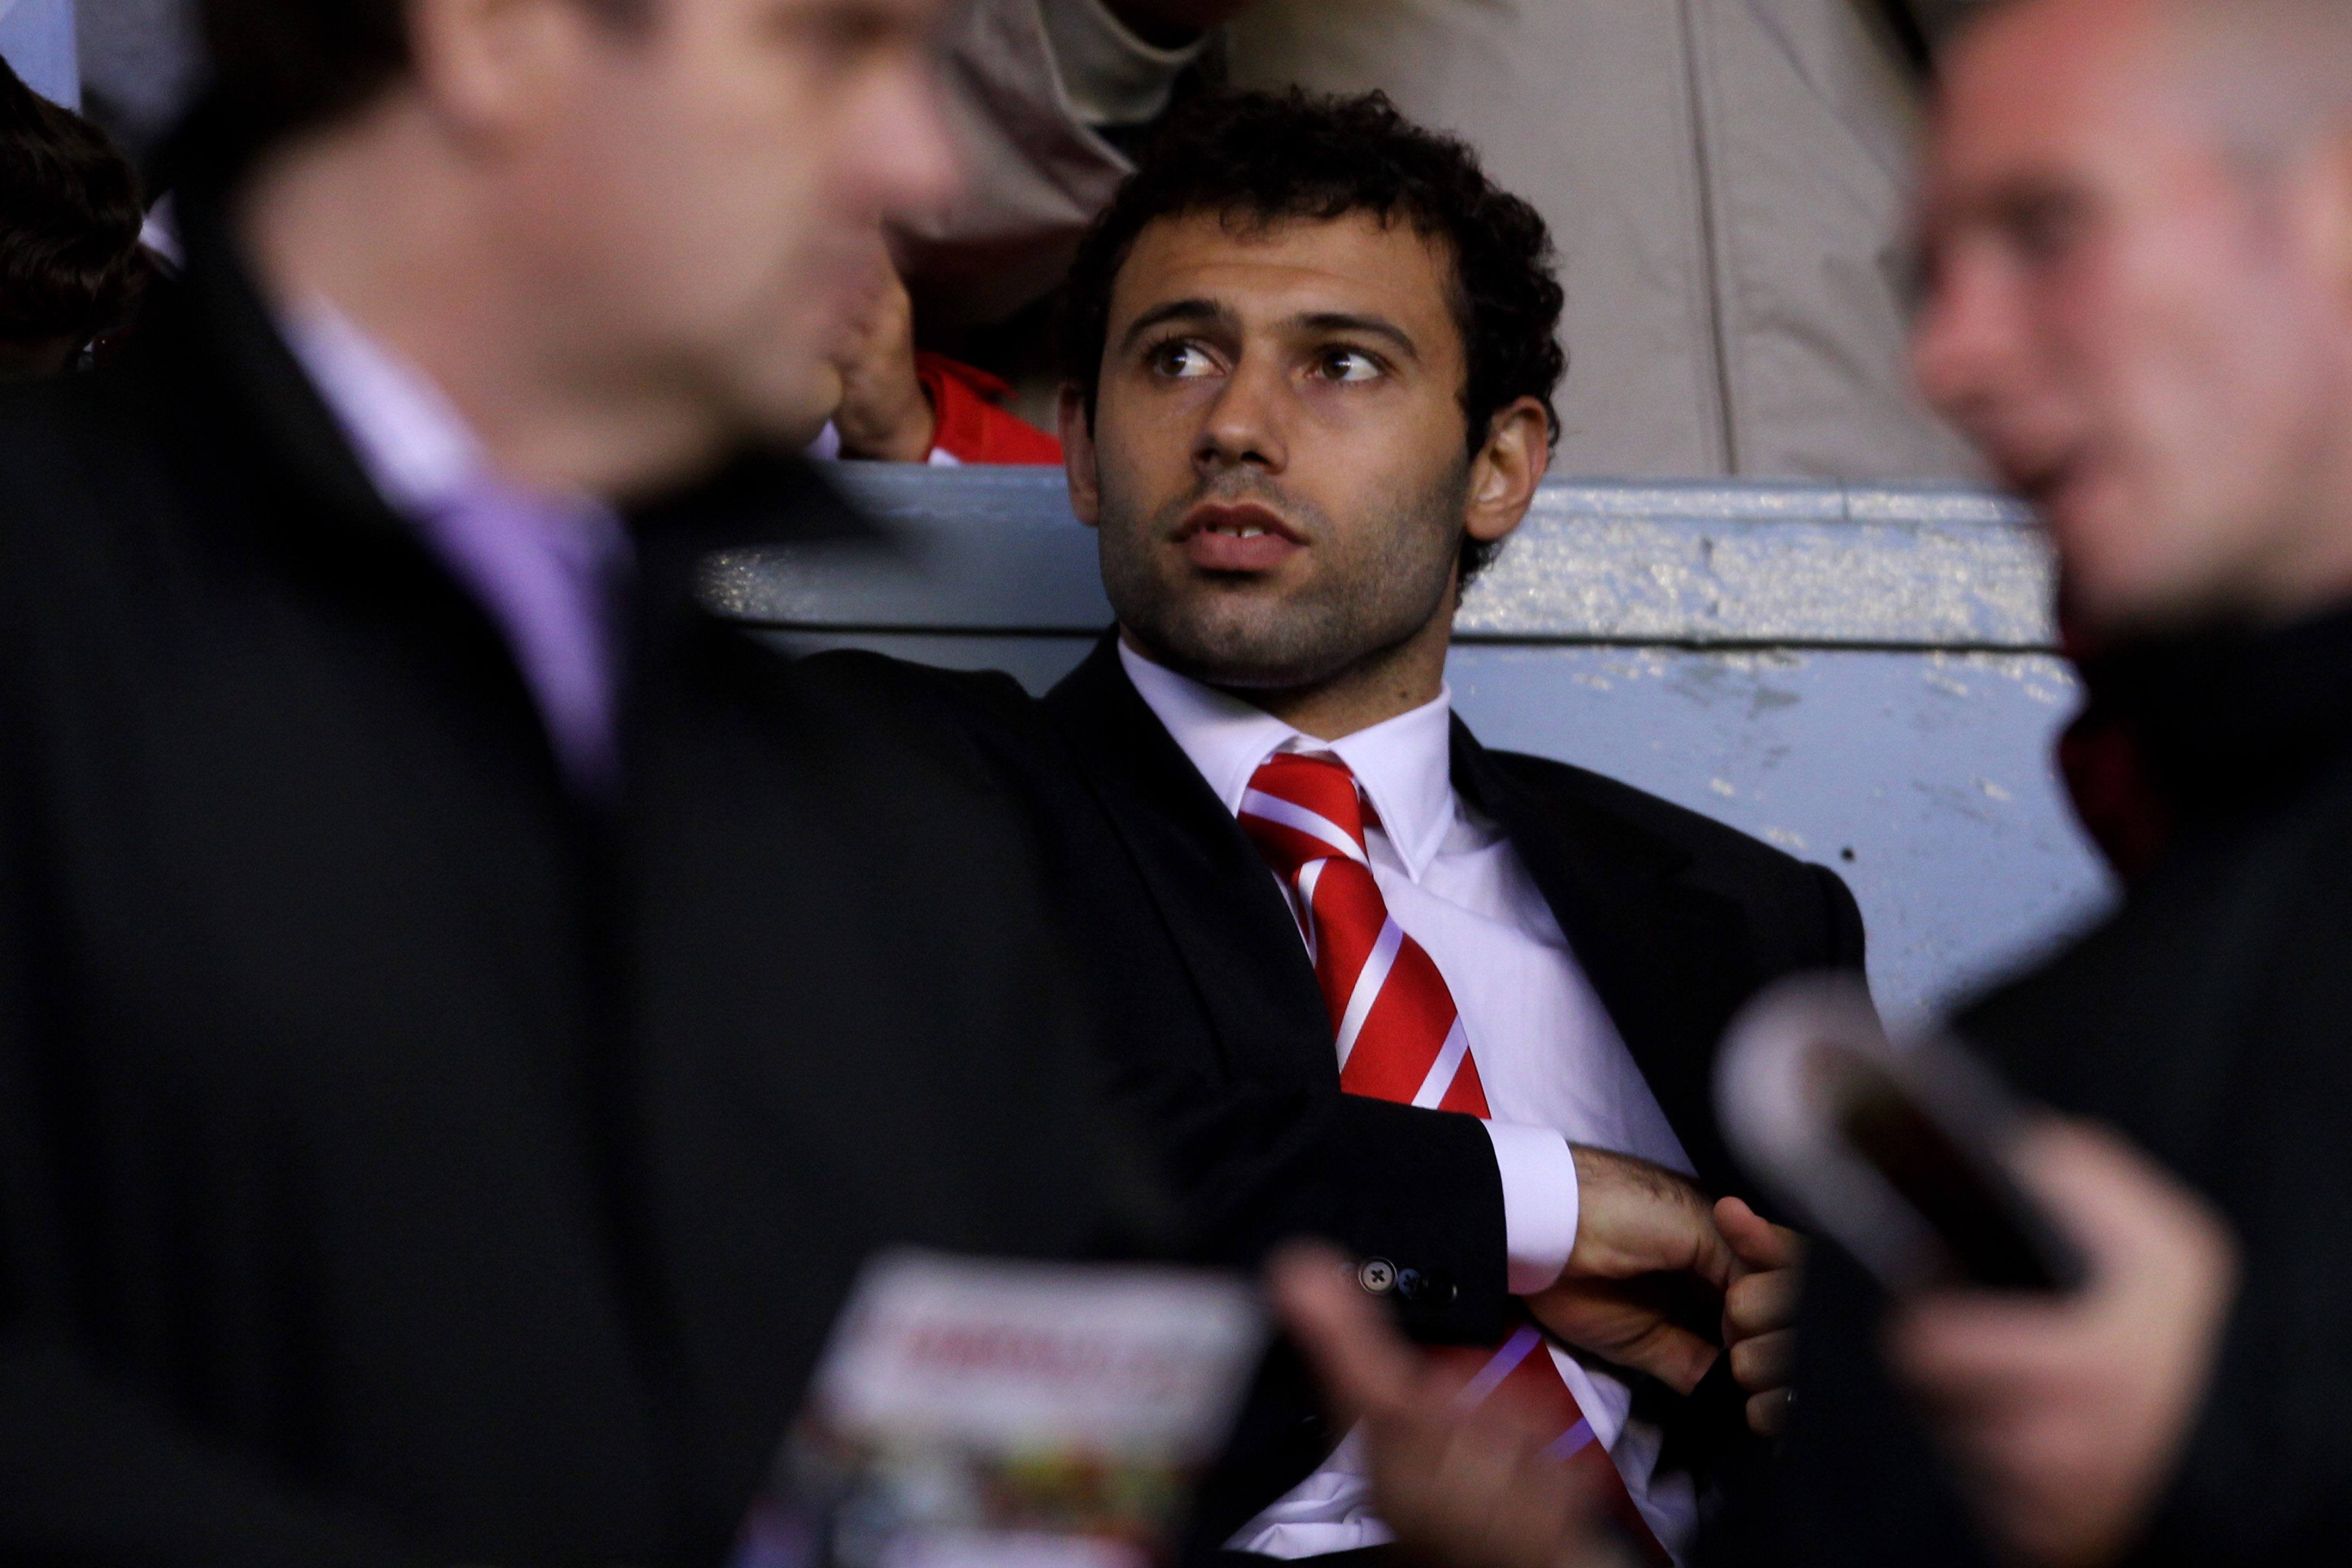 LIVERPOOL, ENGLAND - AUGUST 19:  Javier Mascherano of Liverpool looks on from the stands during the UEFA Europa League play-off first leg match beteween Liverpool and Trabzonspor at Anfield on August 19, 2010 in Liverpool, England.  (Photo by Alex Livesey